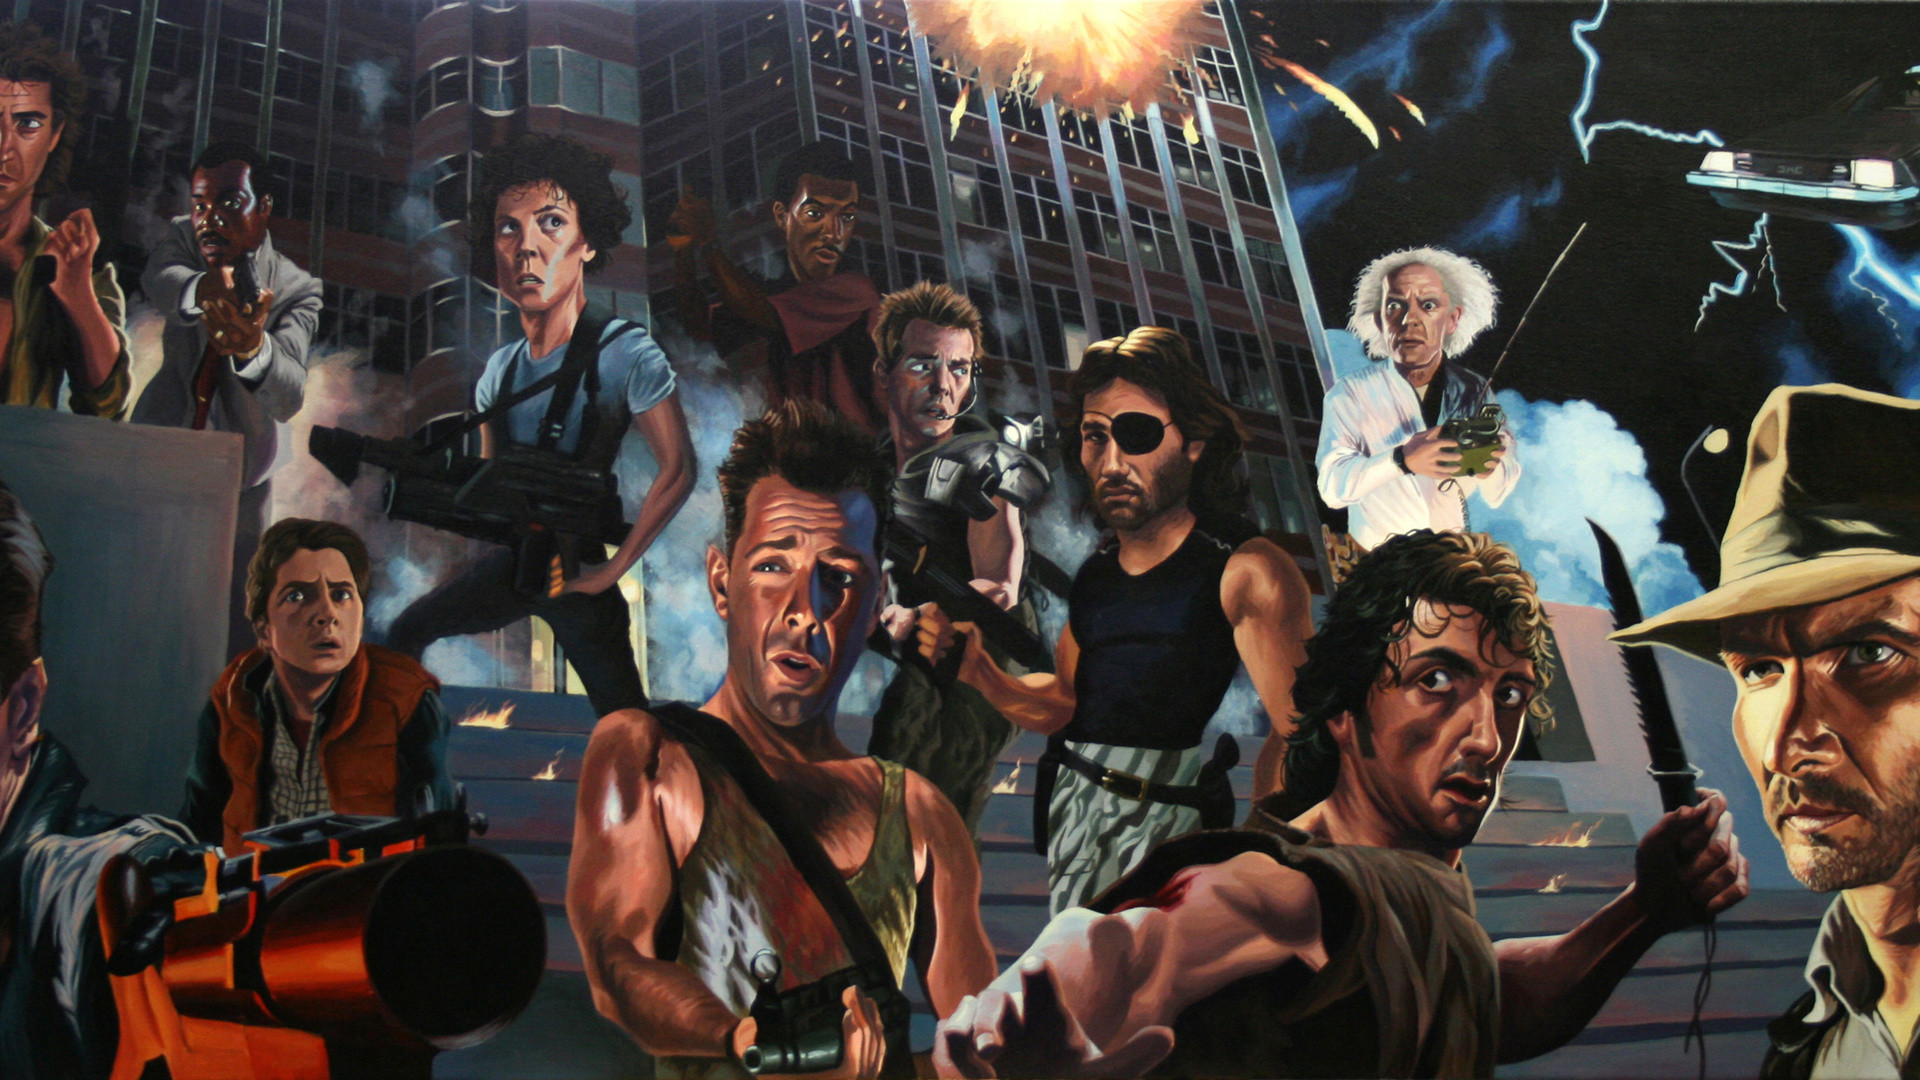 80s Movie Wallpaper 65 Images